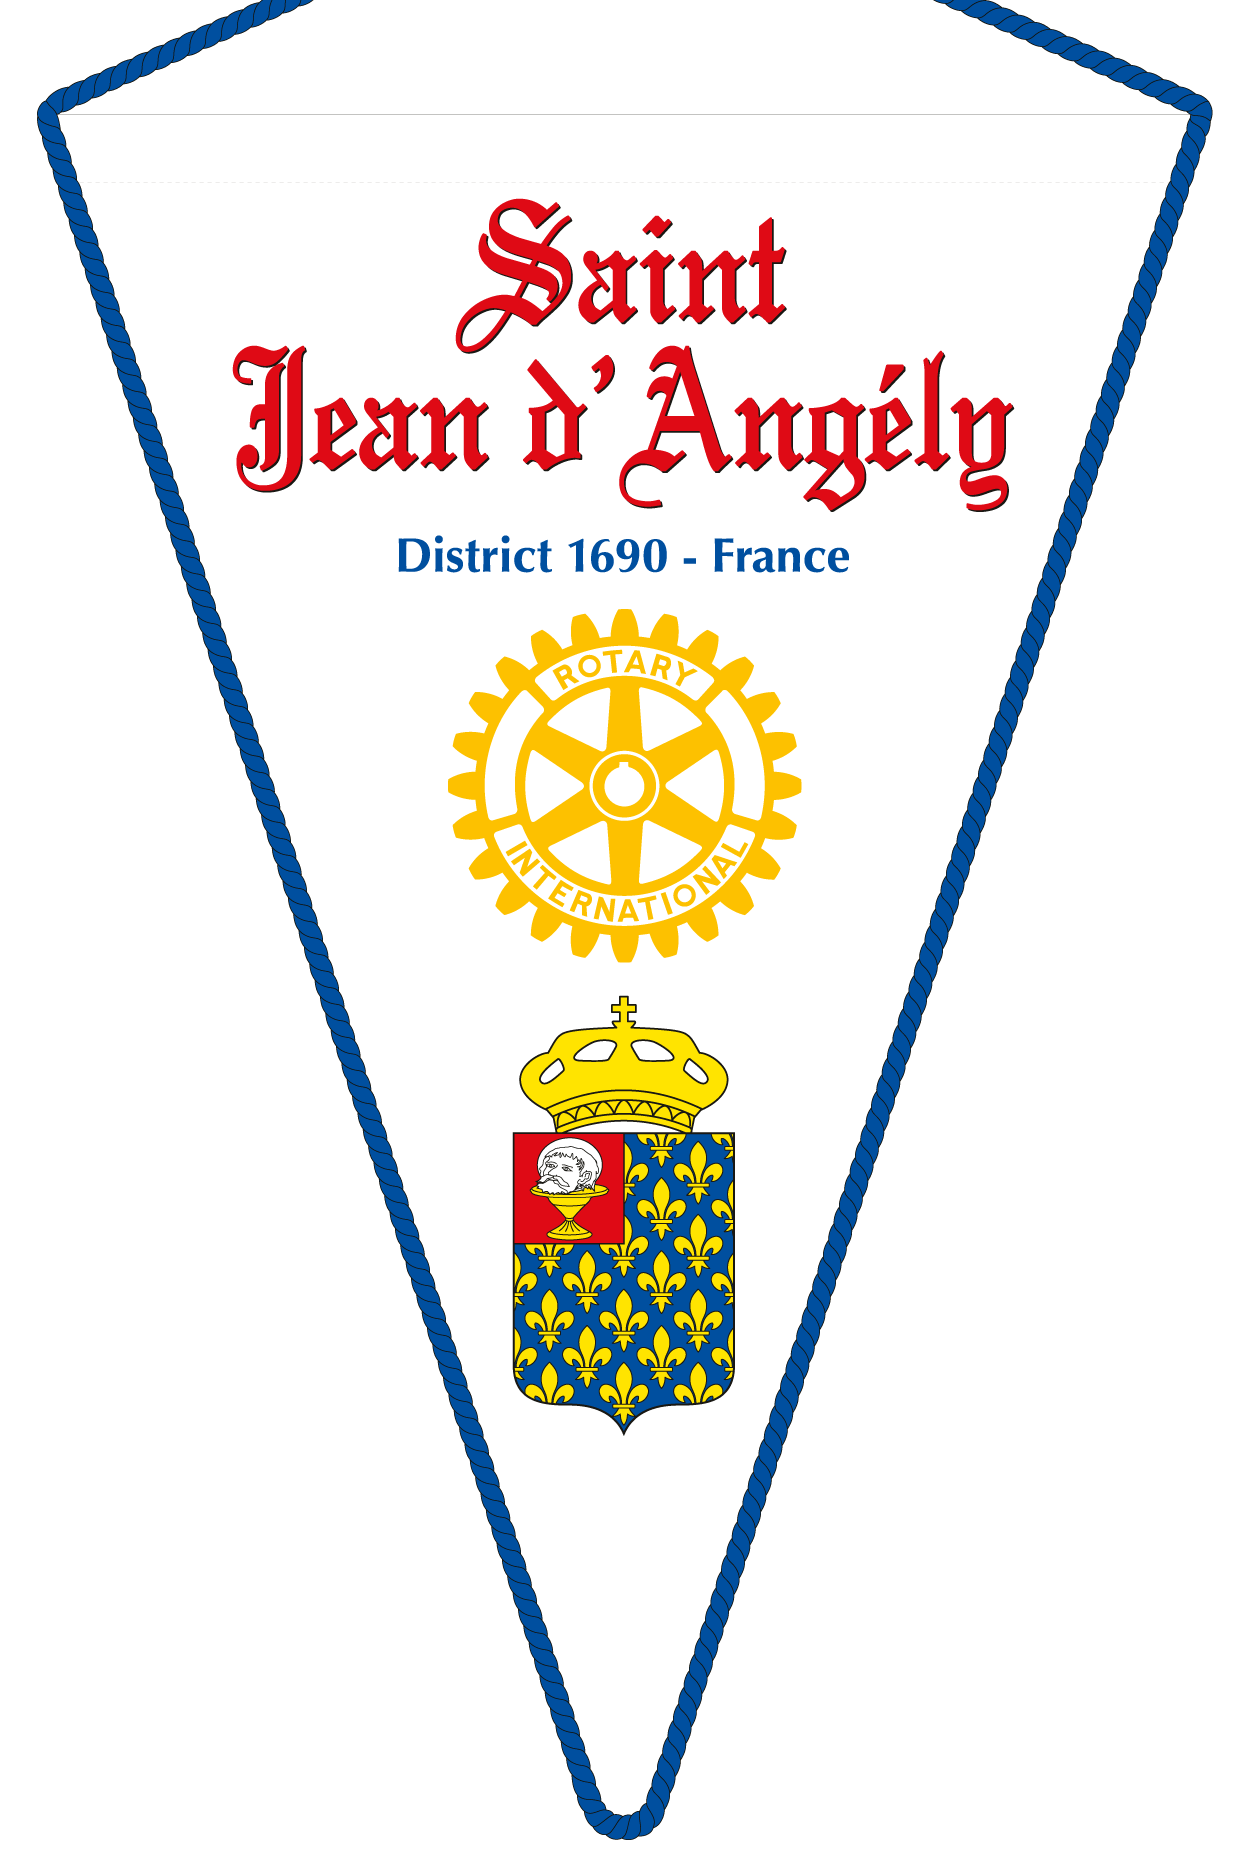 FANION ROTARY CLUB SAINT JEAN ANGELY